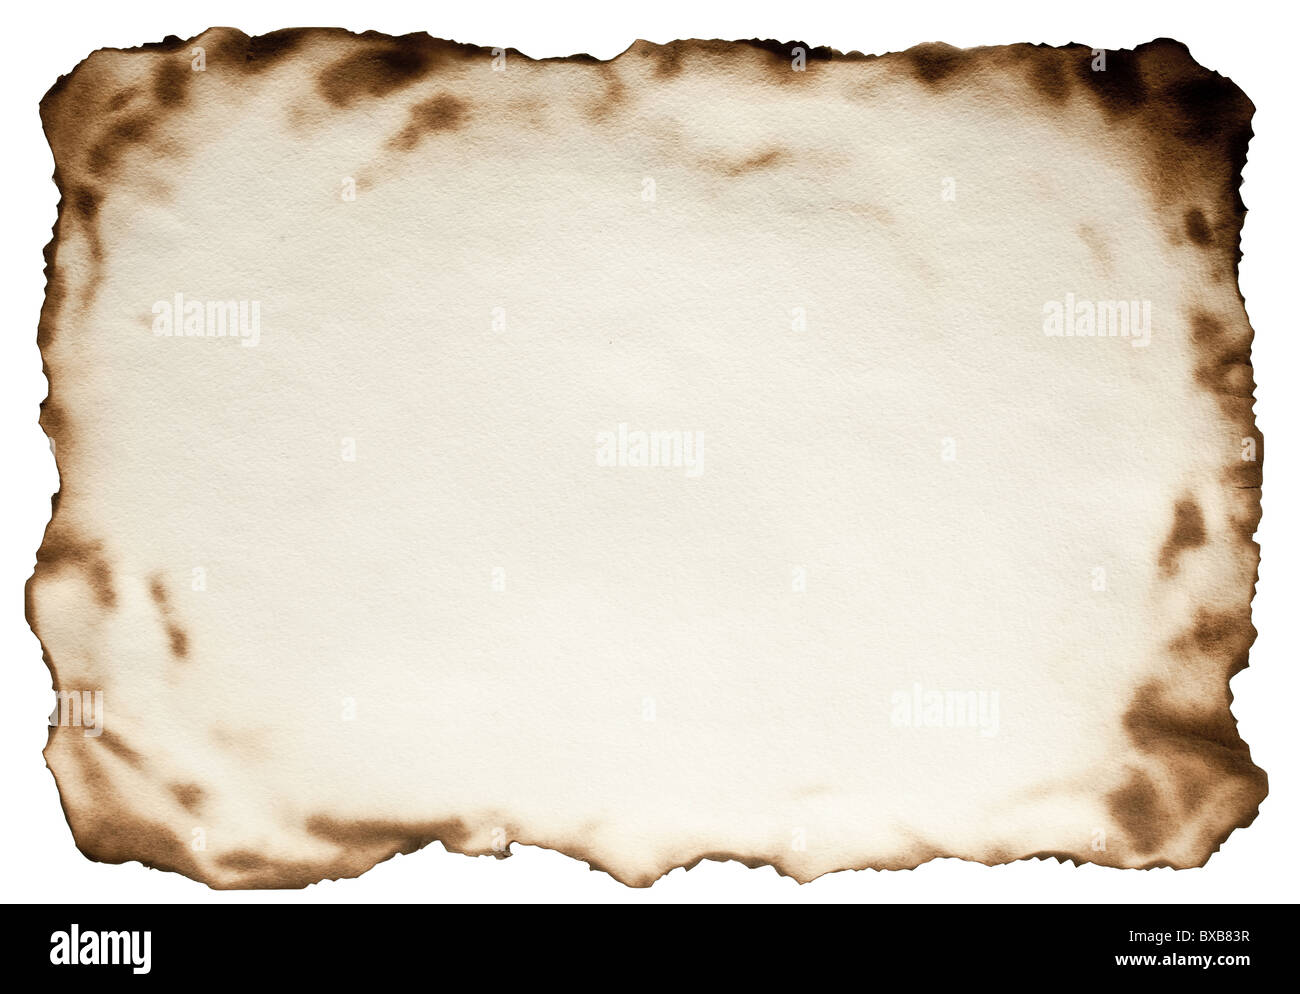 Burnt at the edges textured paper against isolated on a white background. File contains the path for cut. - Stock Image